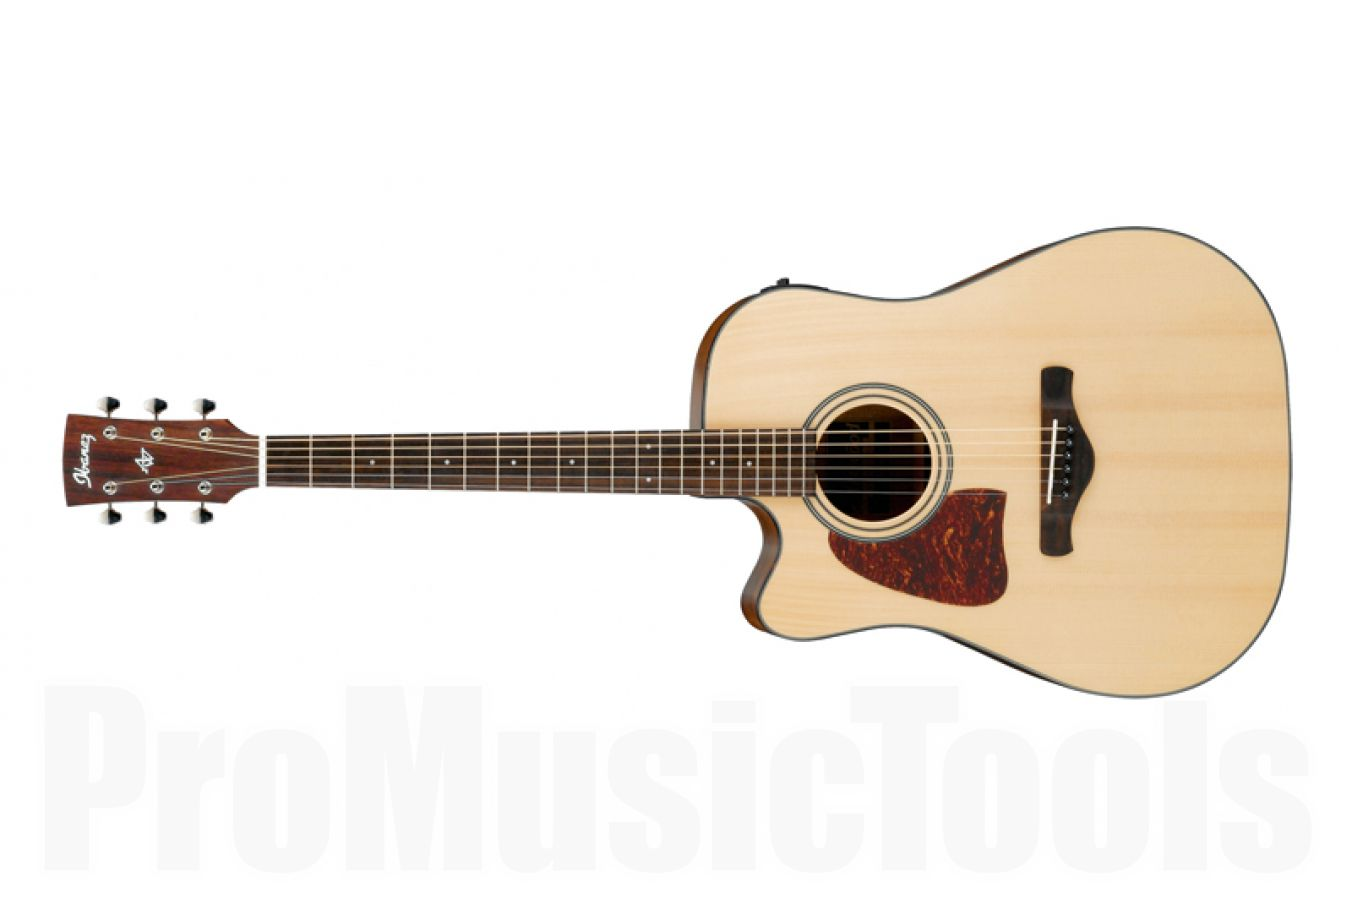 Ibanez AW400LCE NTG Lefthand - Natural Gloss